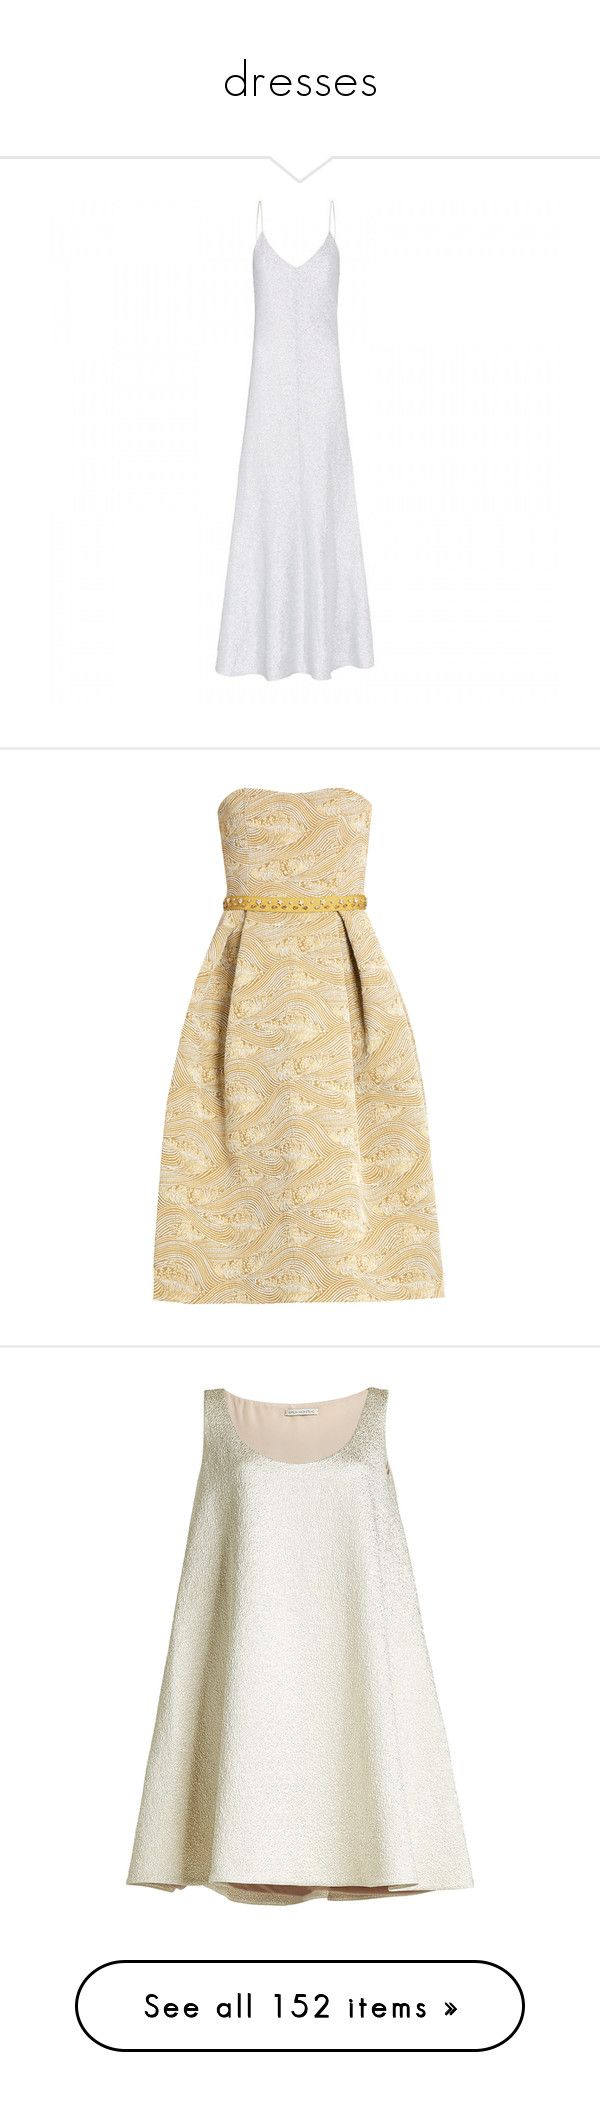 """""""dresses"""" by ashleyrcrocker ❤ liked on Polyvore featuring dresses, white slip dress, white color dress, white fit and flare dress, fit flare dress, white day dress, gold, long print dress, beige strapless dress and metallic jacquard dress"""